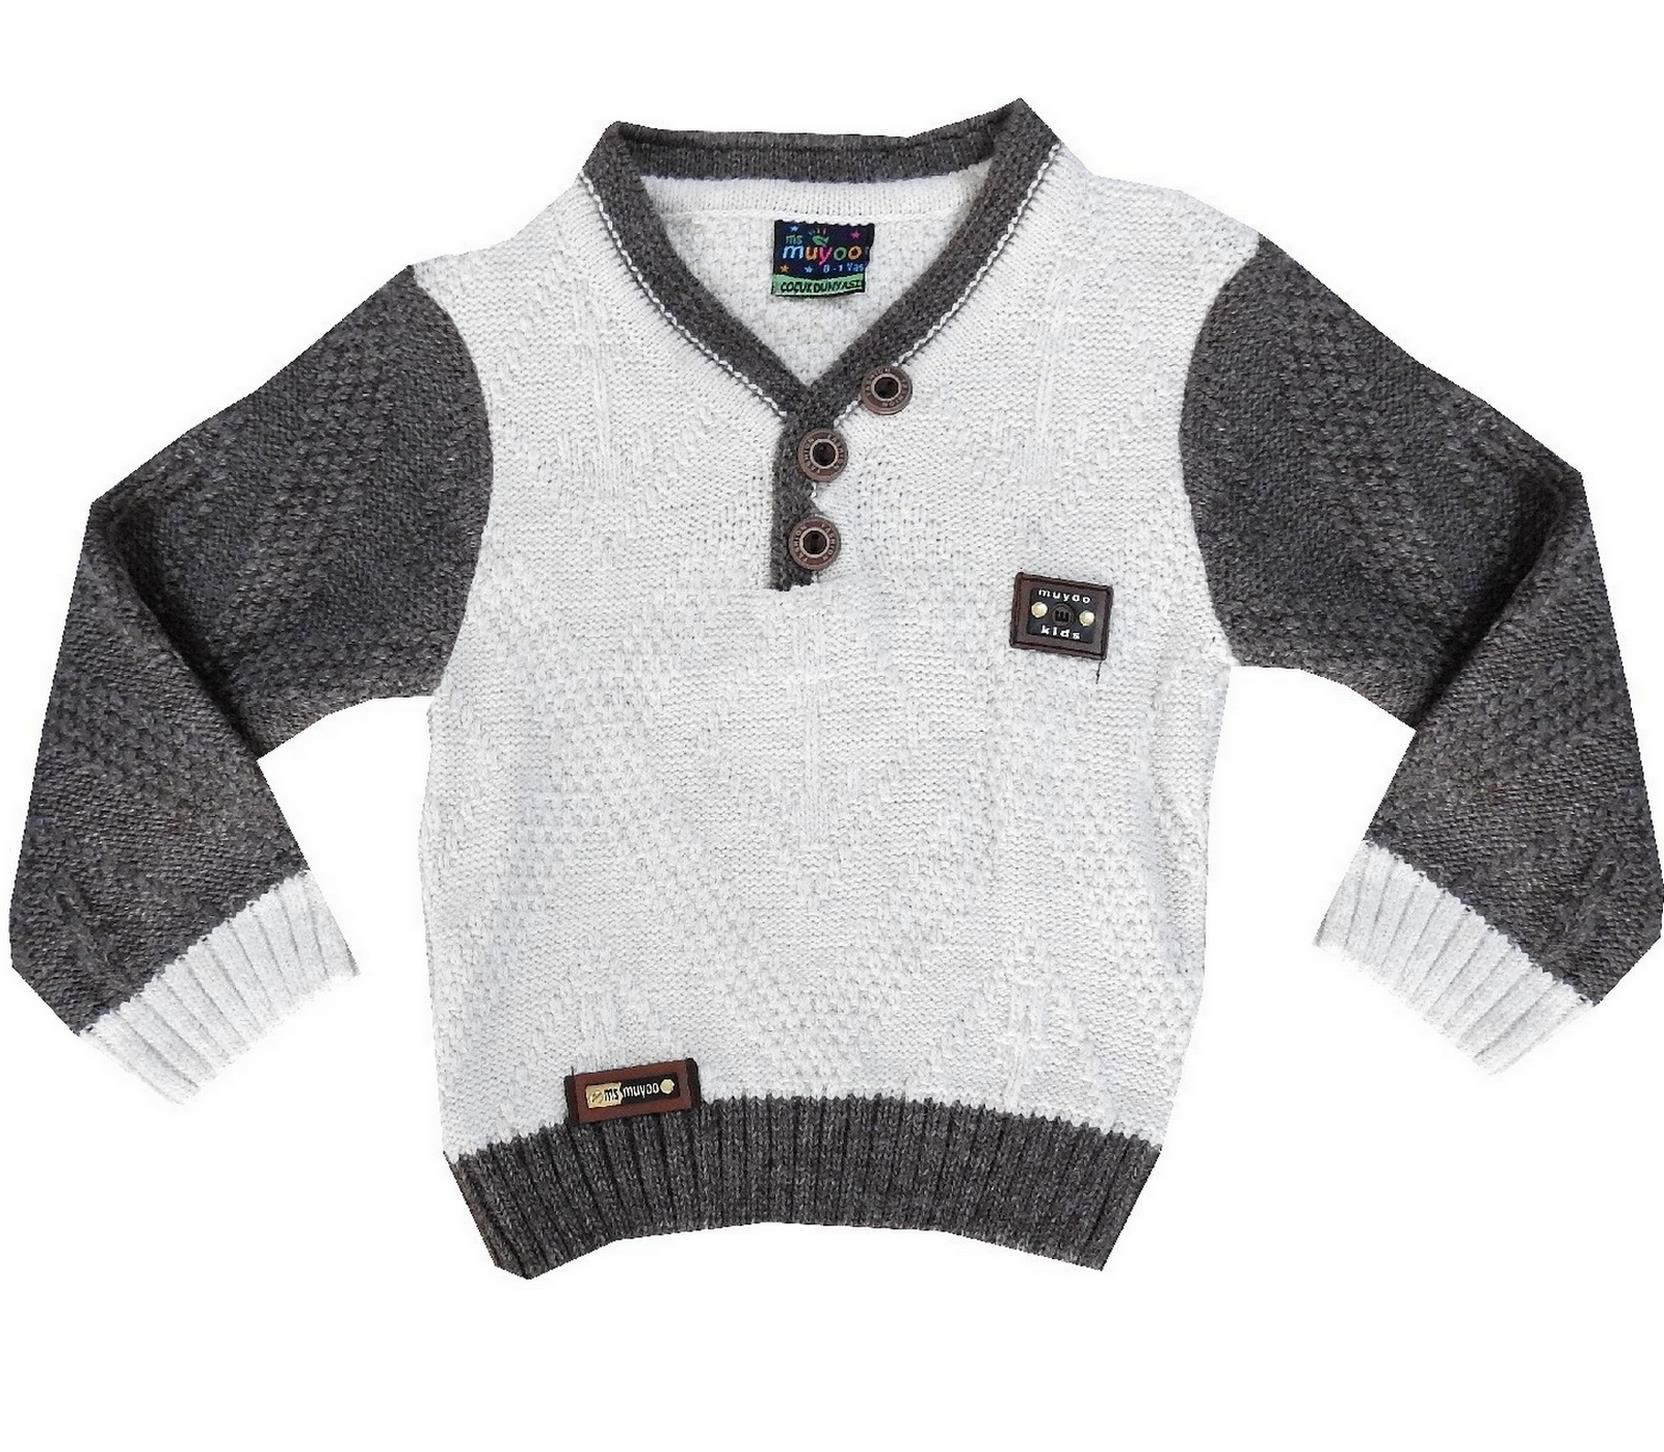 V NECK KNITTED DESIGN SWEATER FOR BOY (1-2-3-4 AGE)